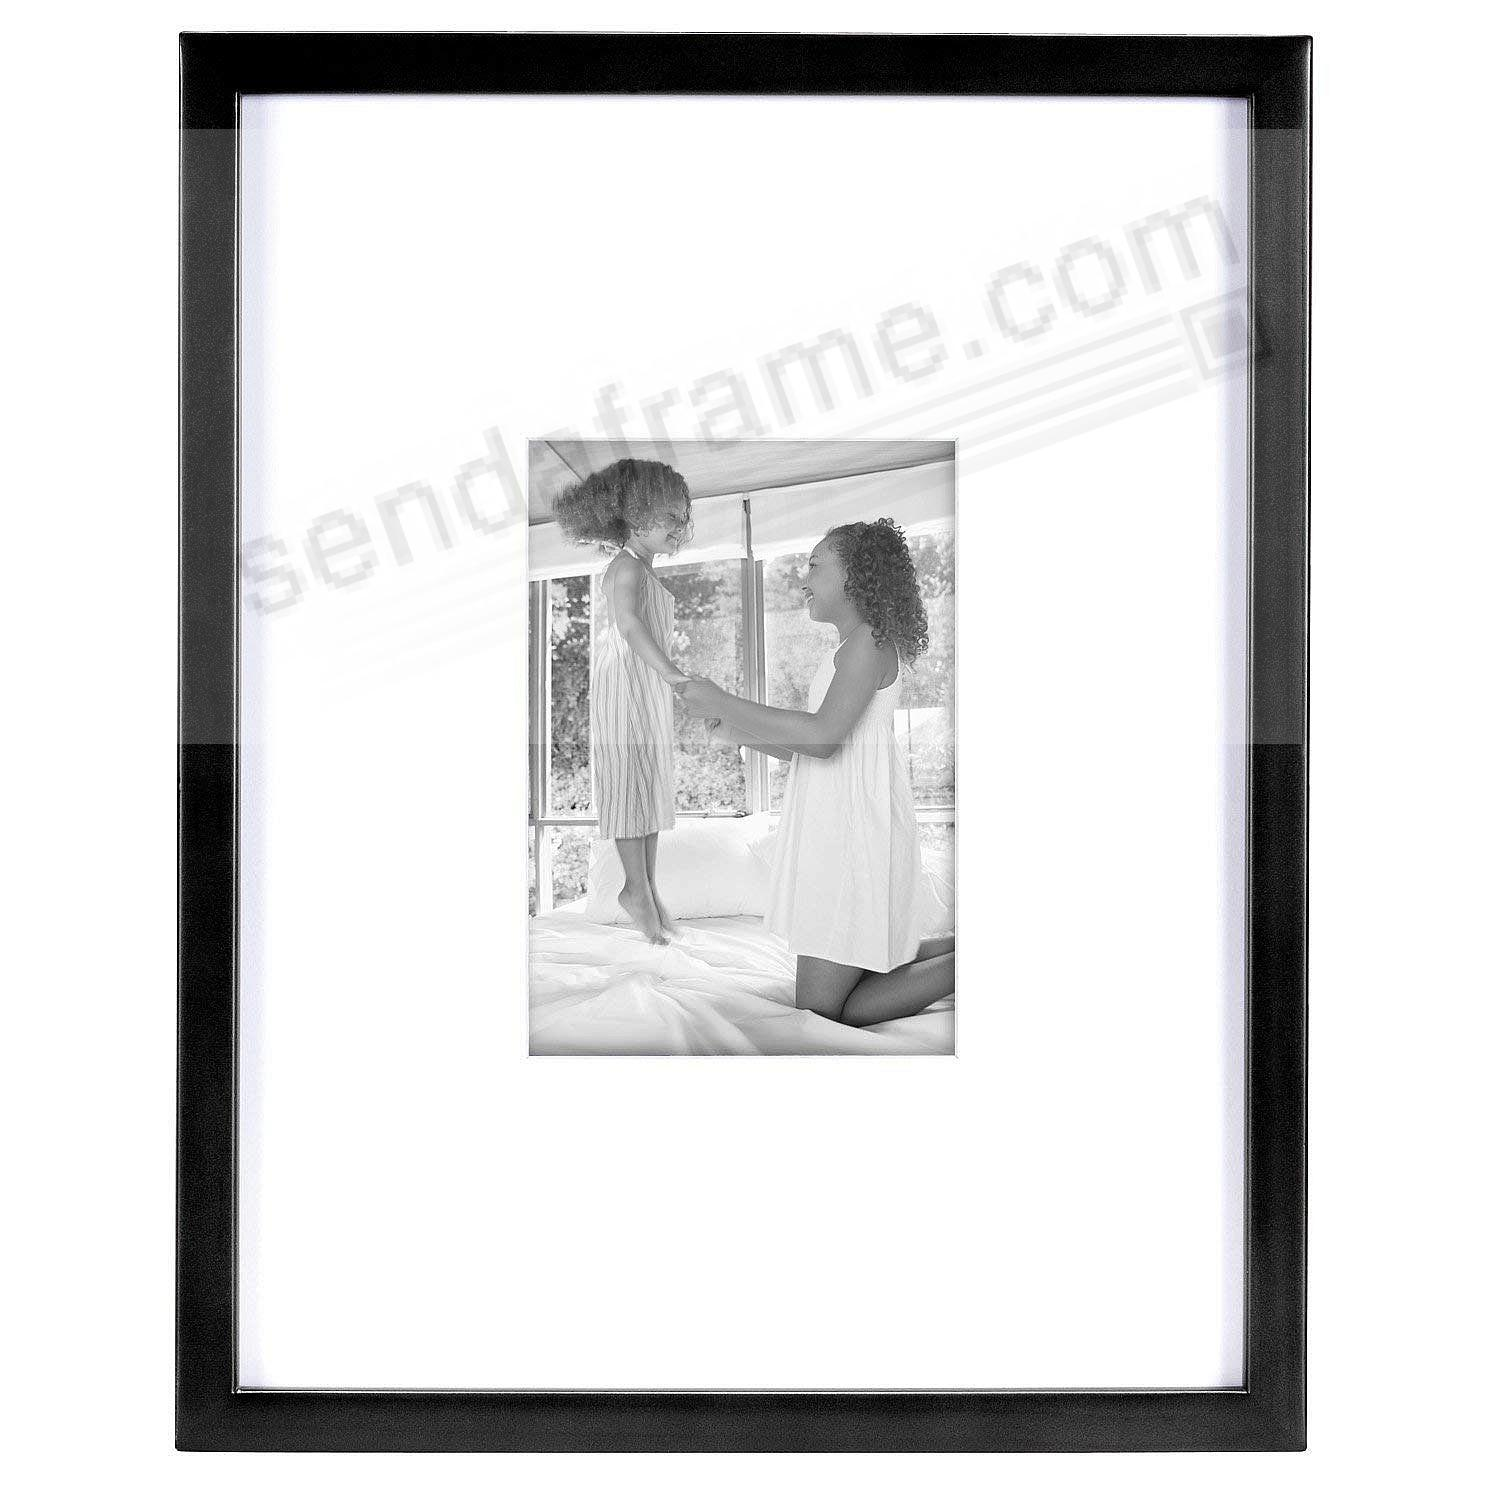 EAST VILLAGE Black Wood 11x14/5x7 Wall Frame from MCS®